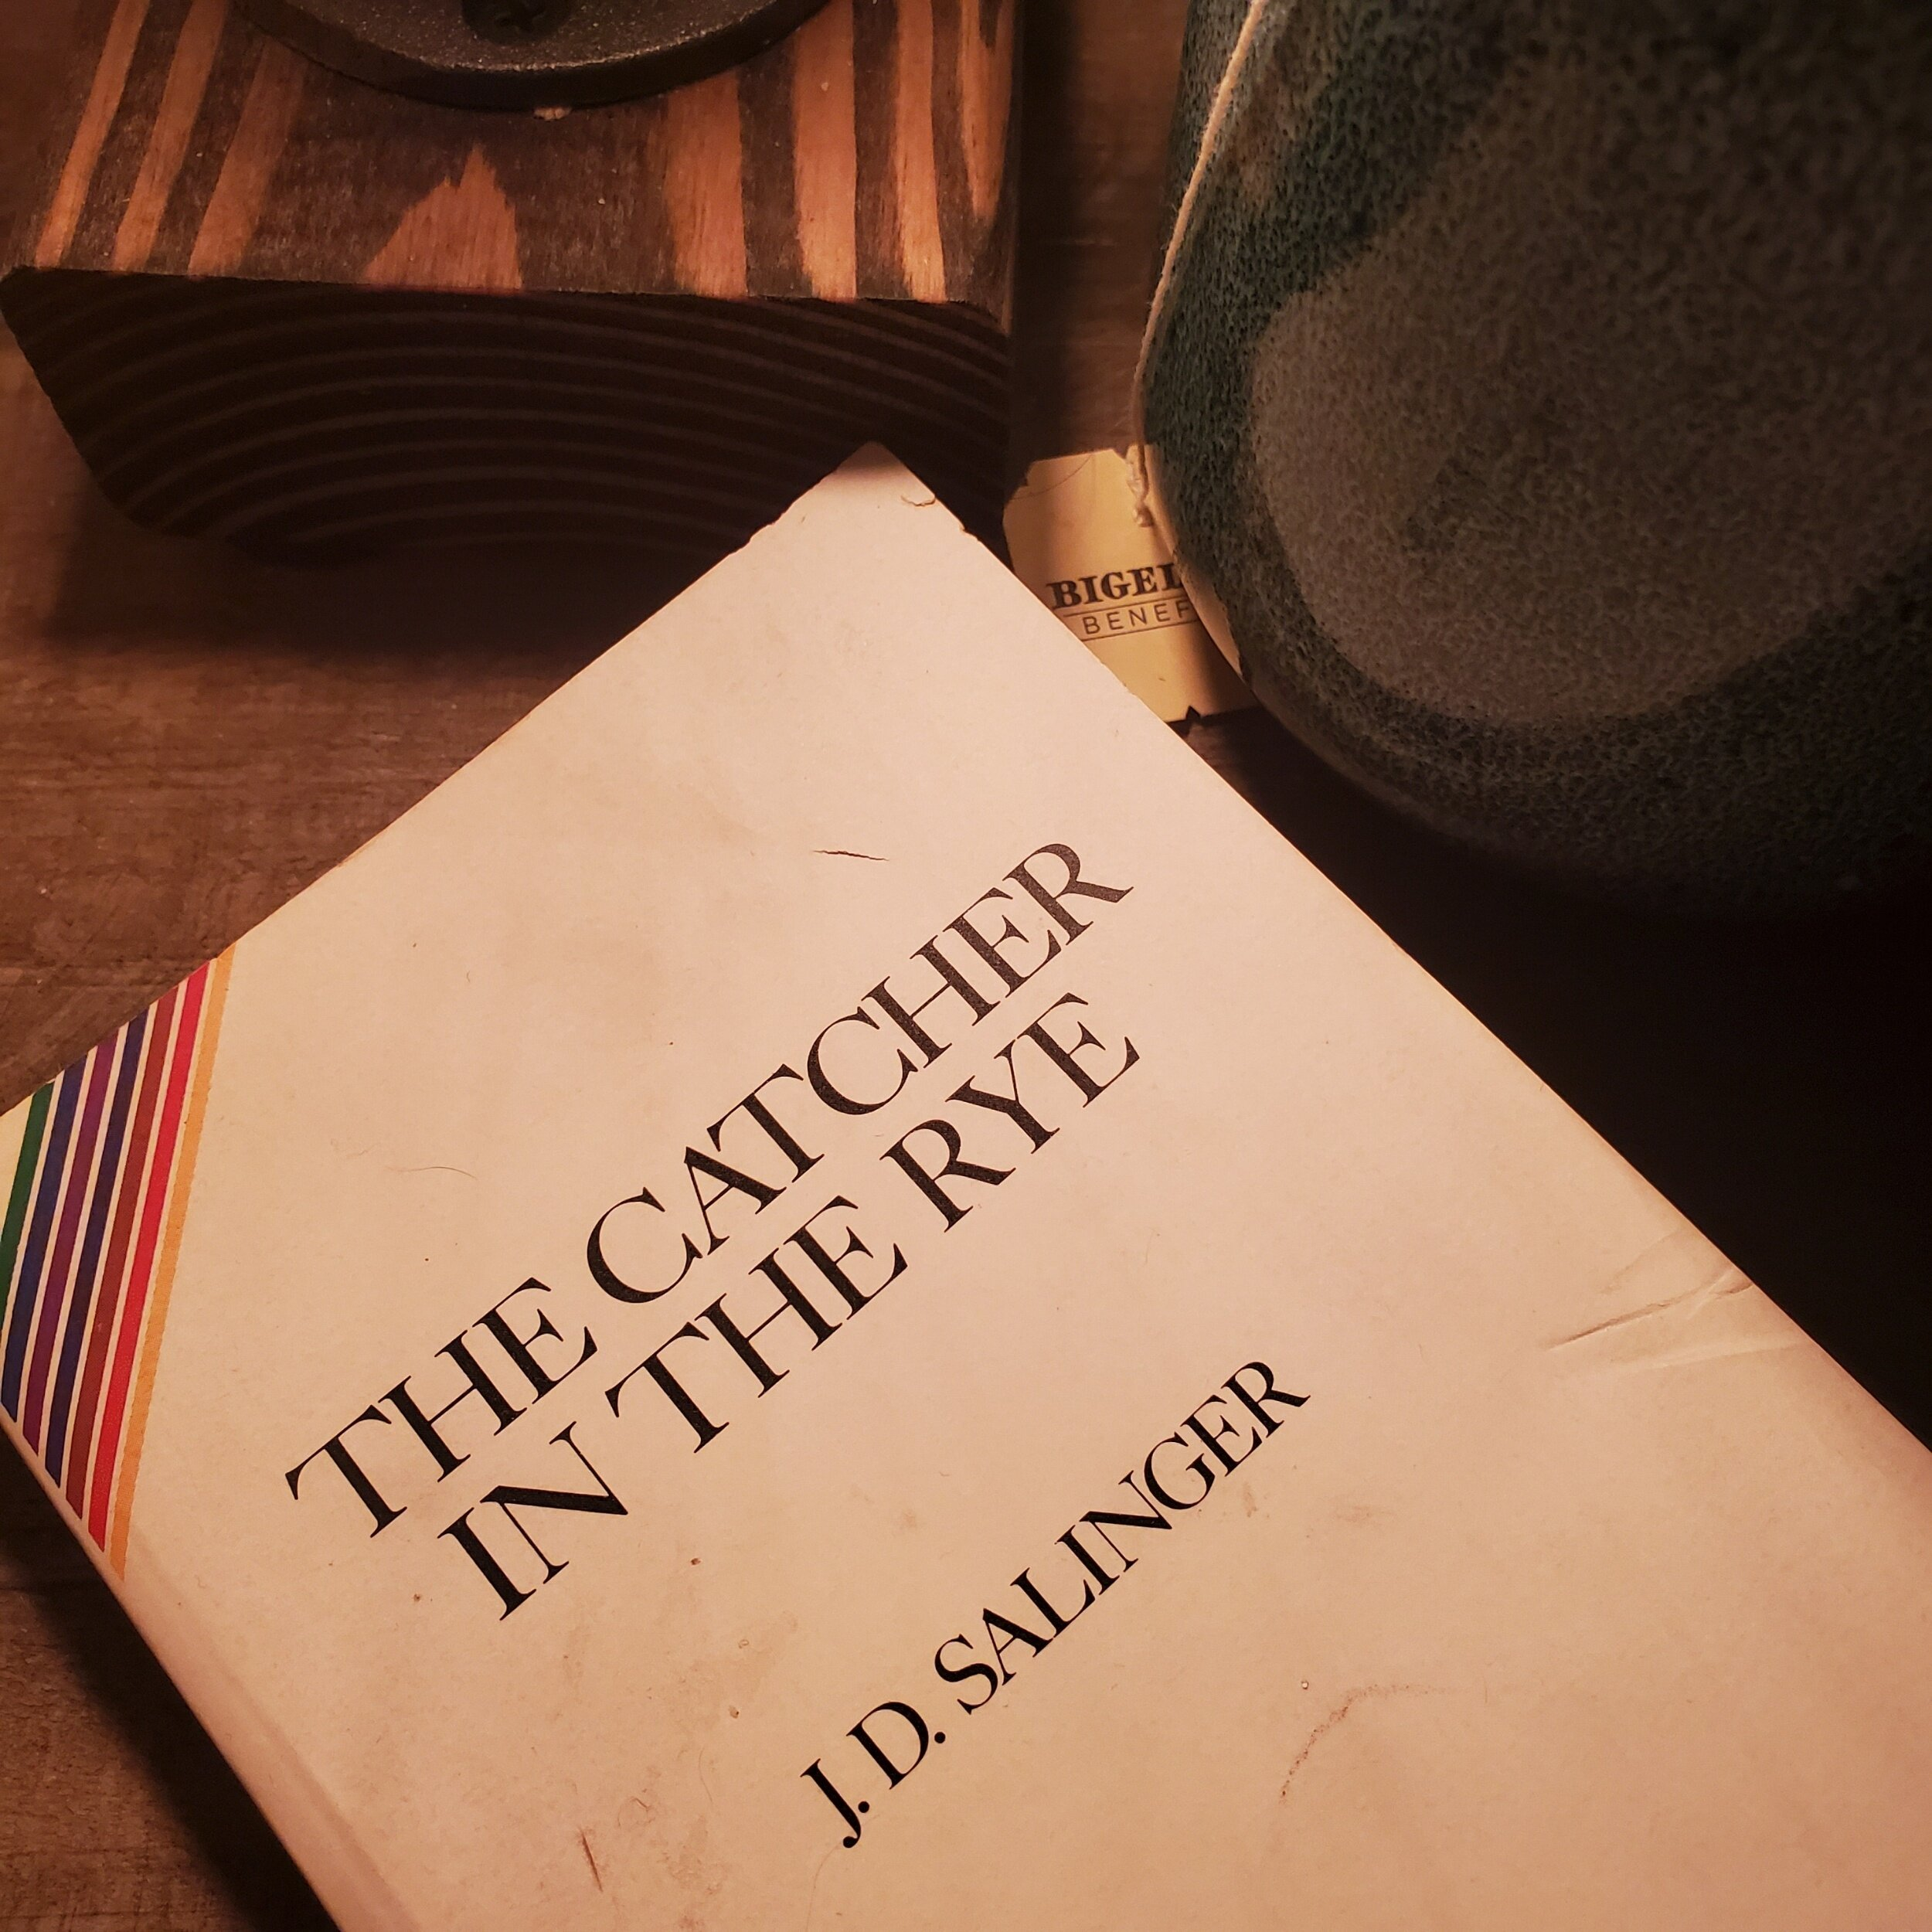 My 1991 edition of Catcher in the Rye